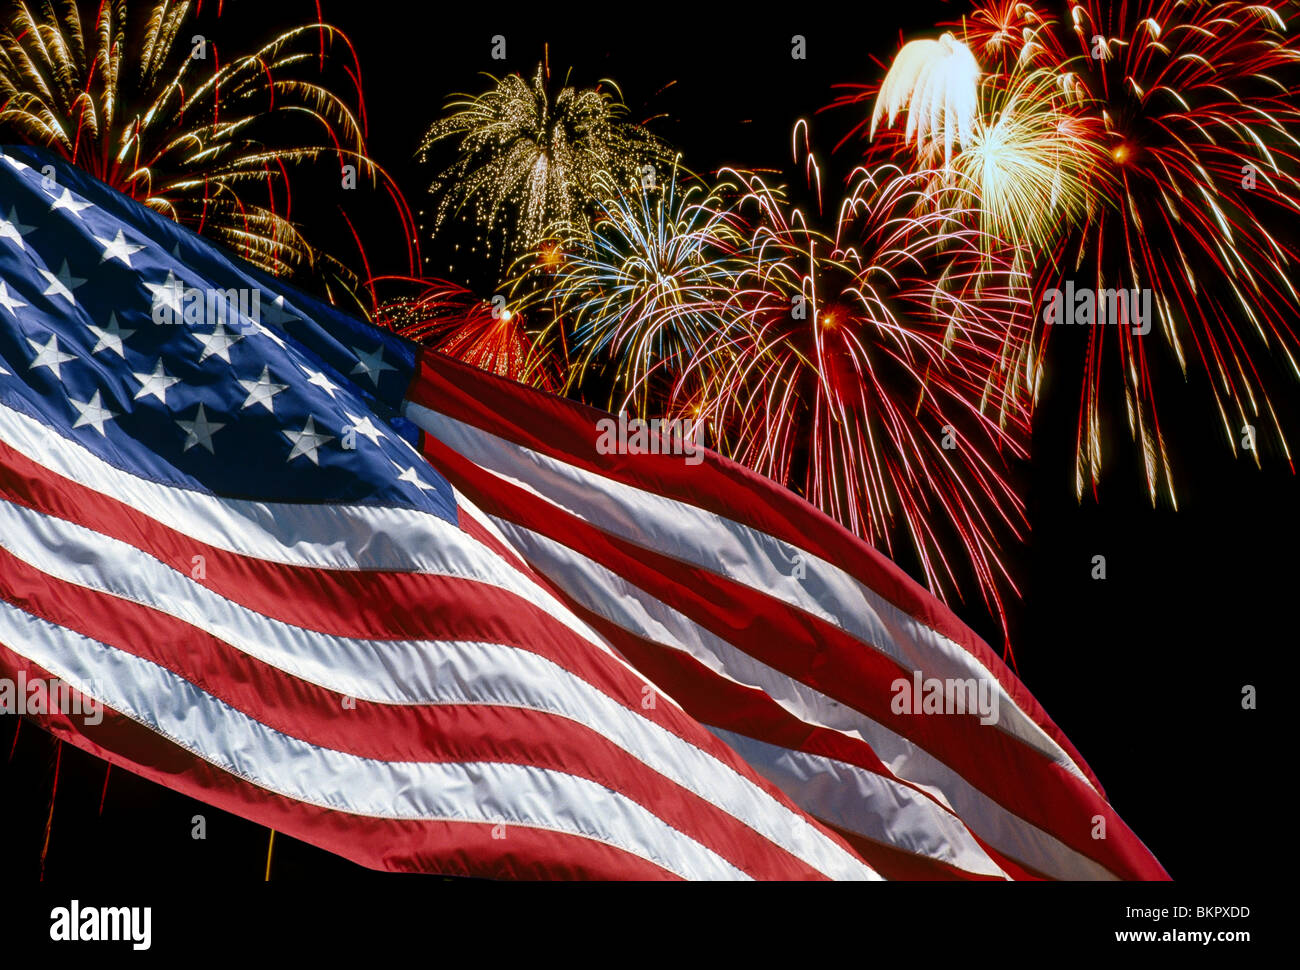 united states flag waving in front of fireworks display patriotic composite stock image